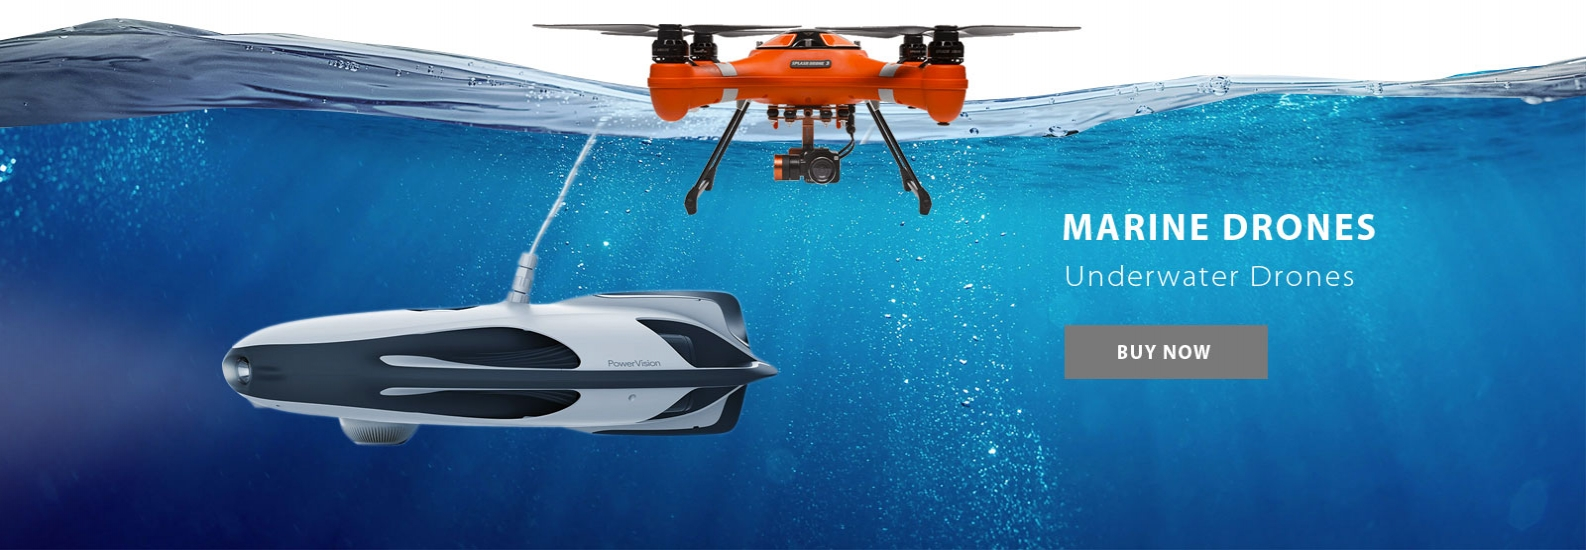 https://www.algadgets.com/uae/underwater-drones-dubai-uae